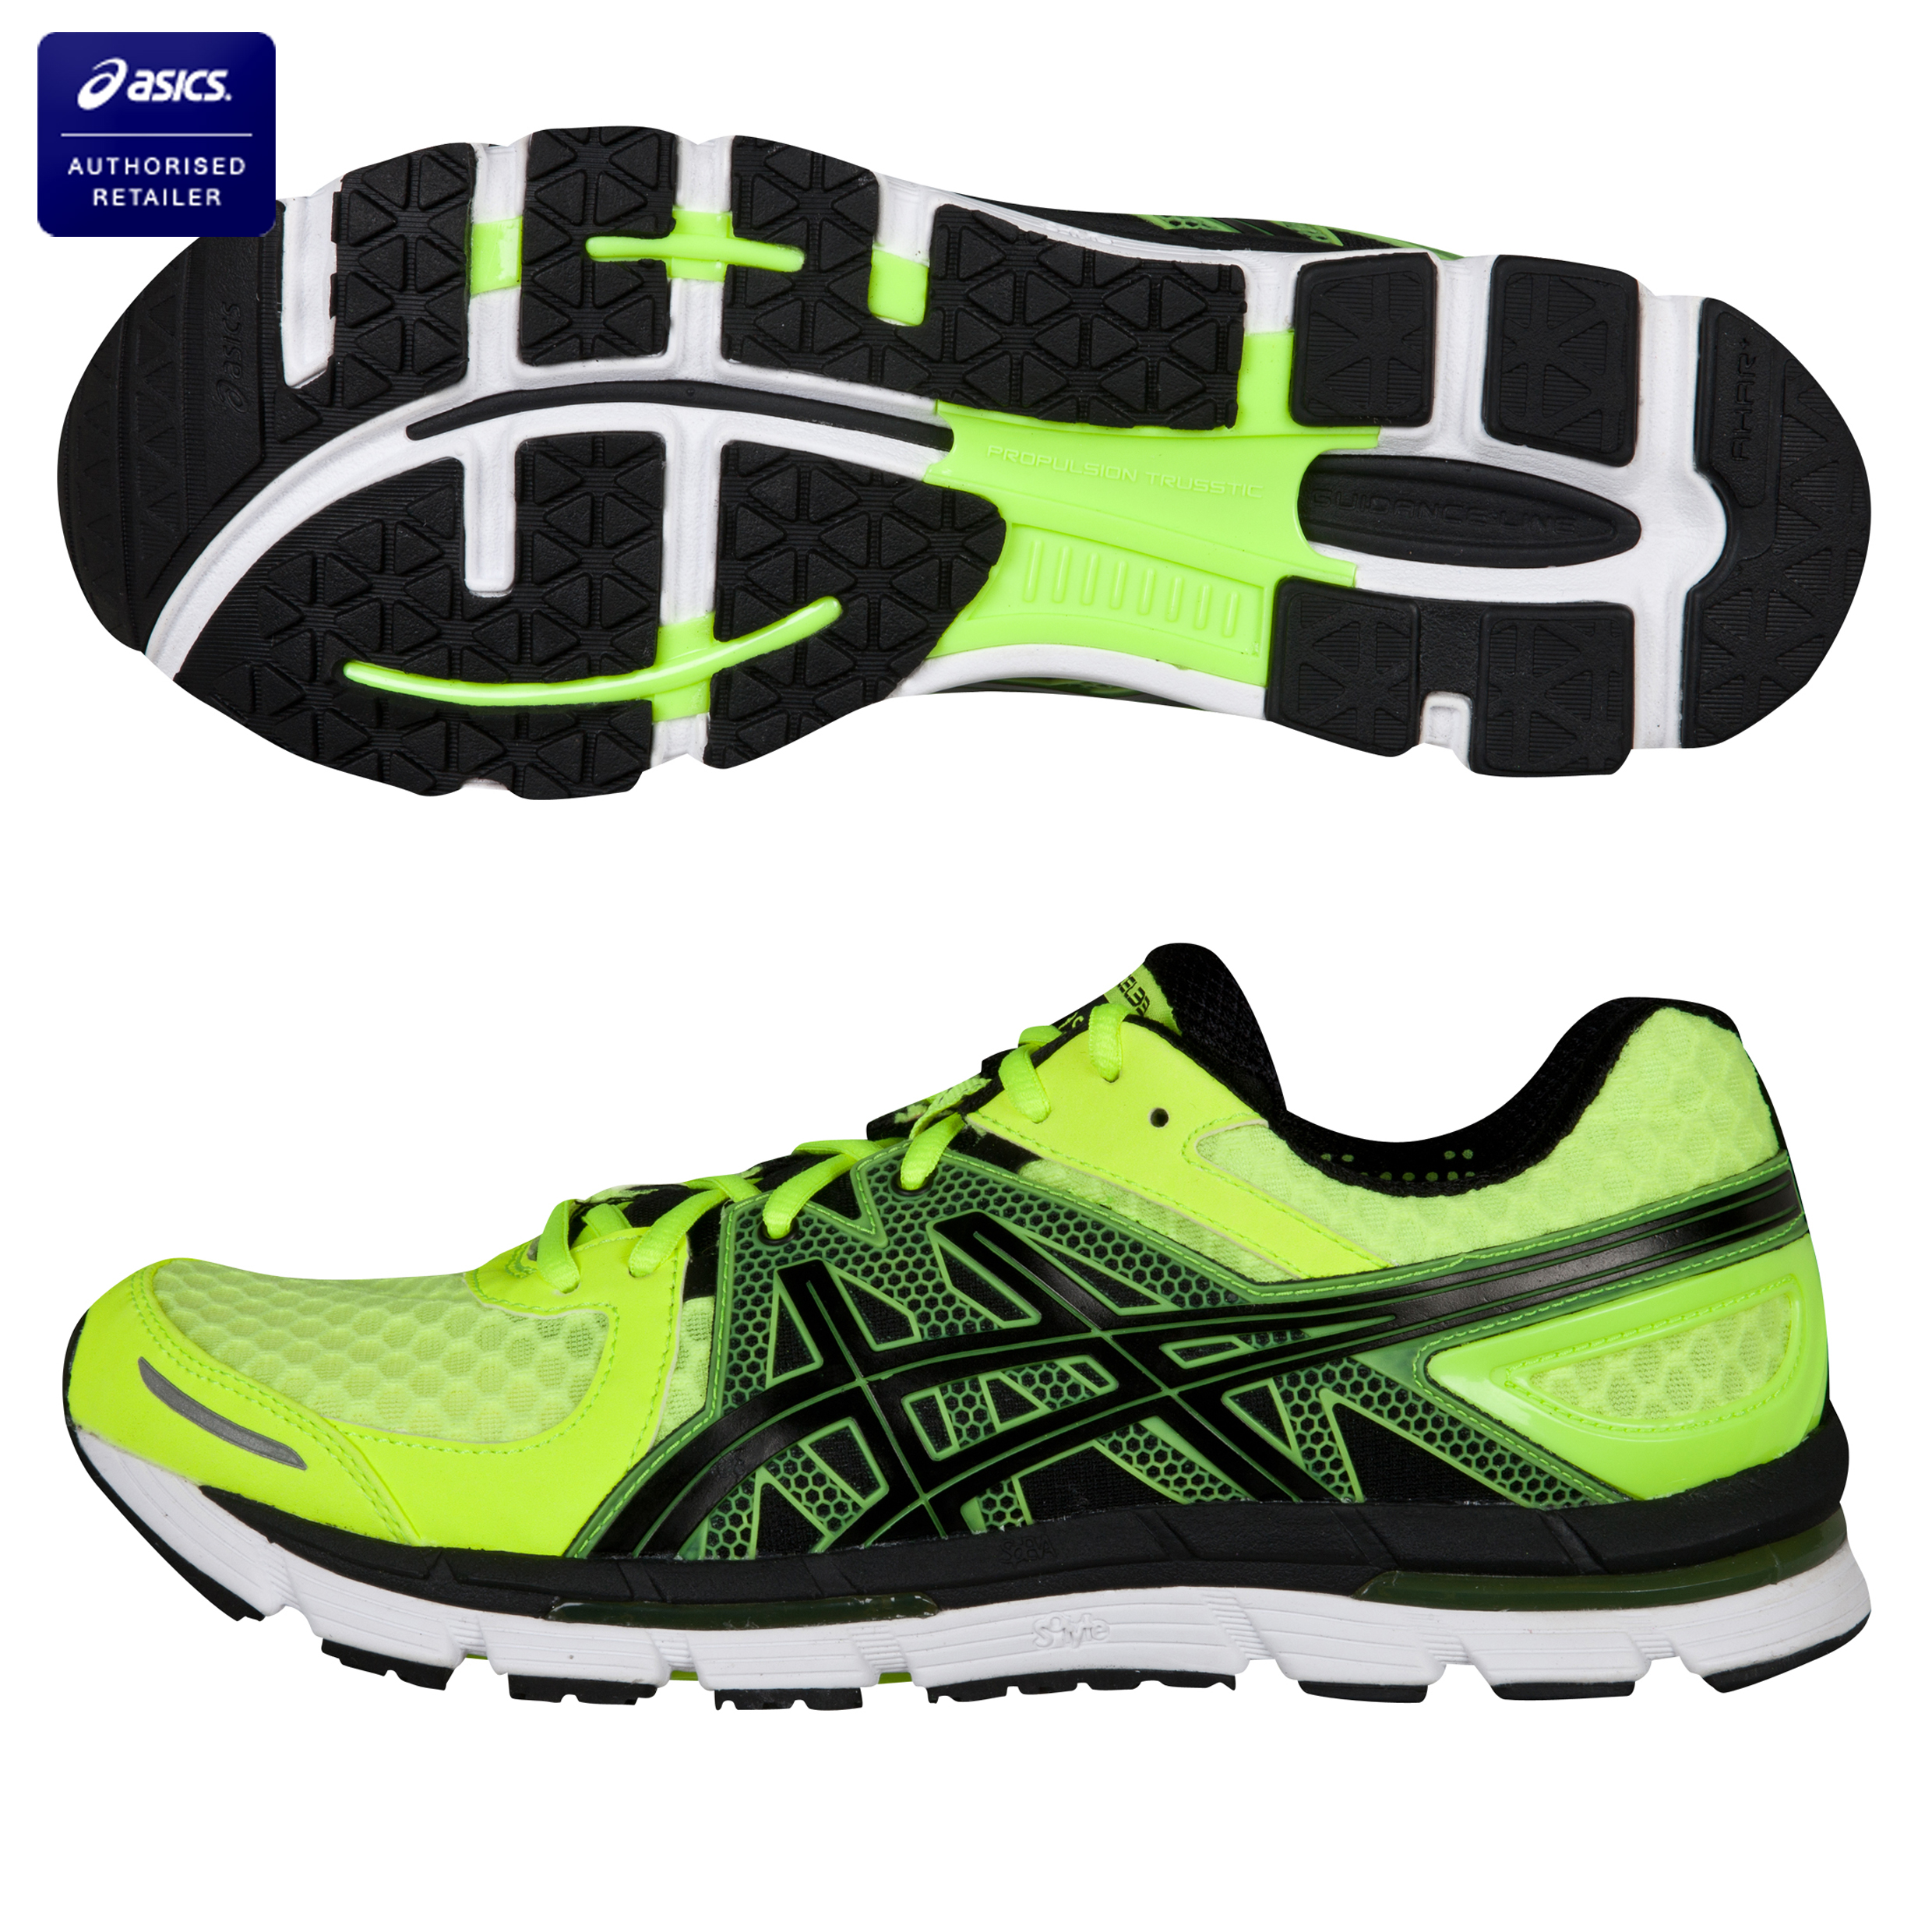 Asics Gel-Excel 33 Running Trainers - Neon Yellow/Black